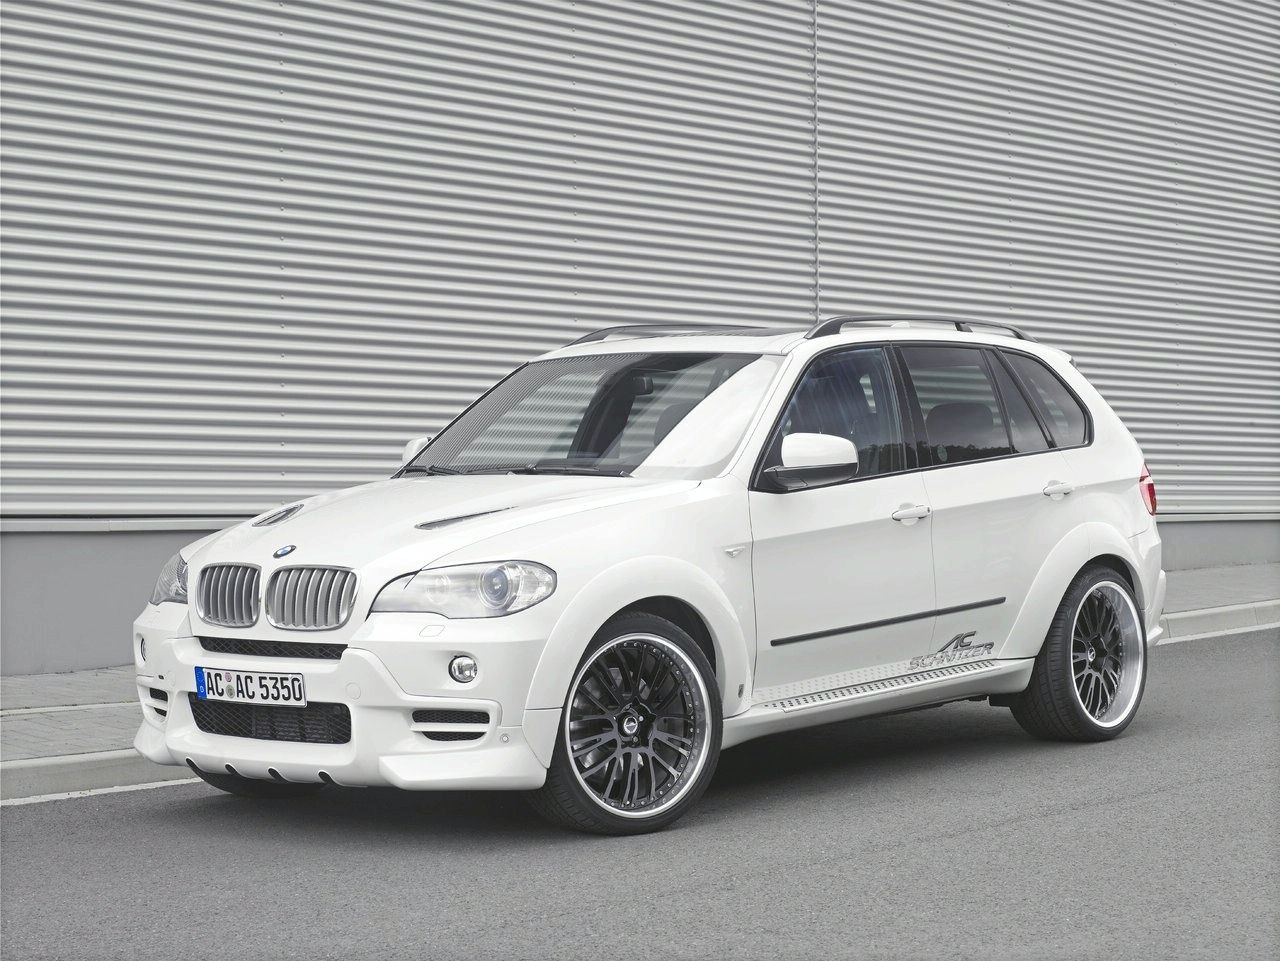 ac schnitzer 39 s falcon kit for the bmw x5 bmw car tuning. Black Bedroom Furniture Sets. Home Design Ideas